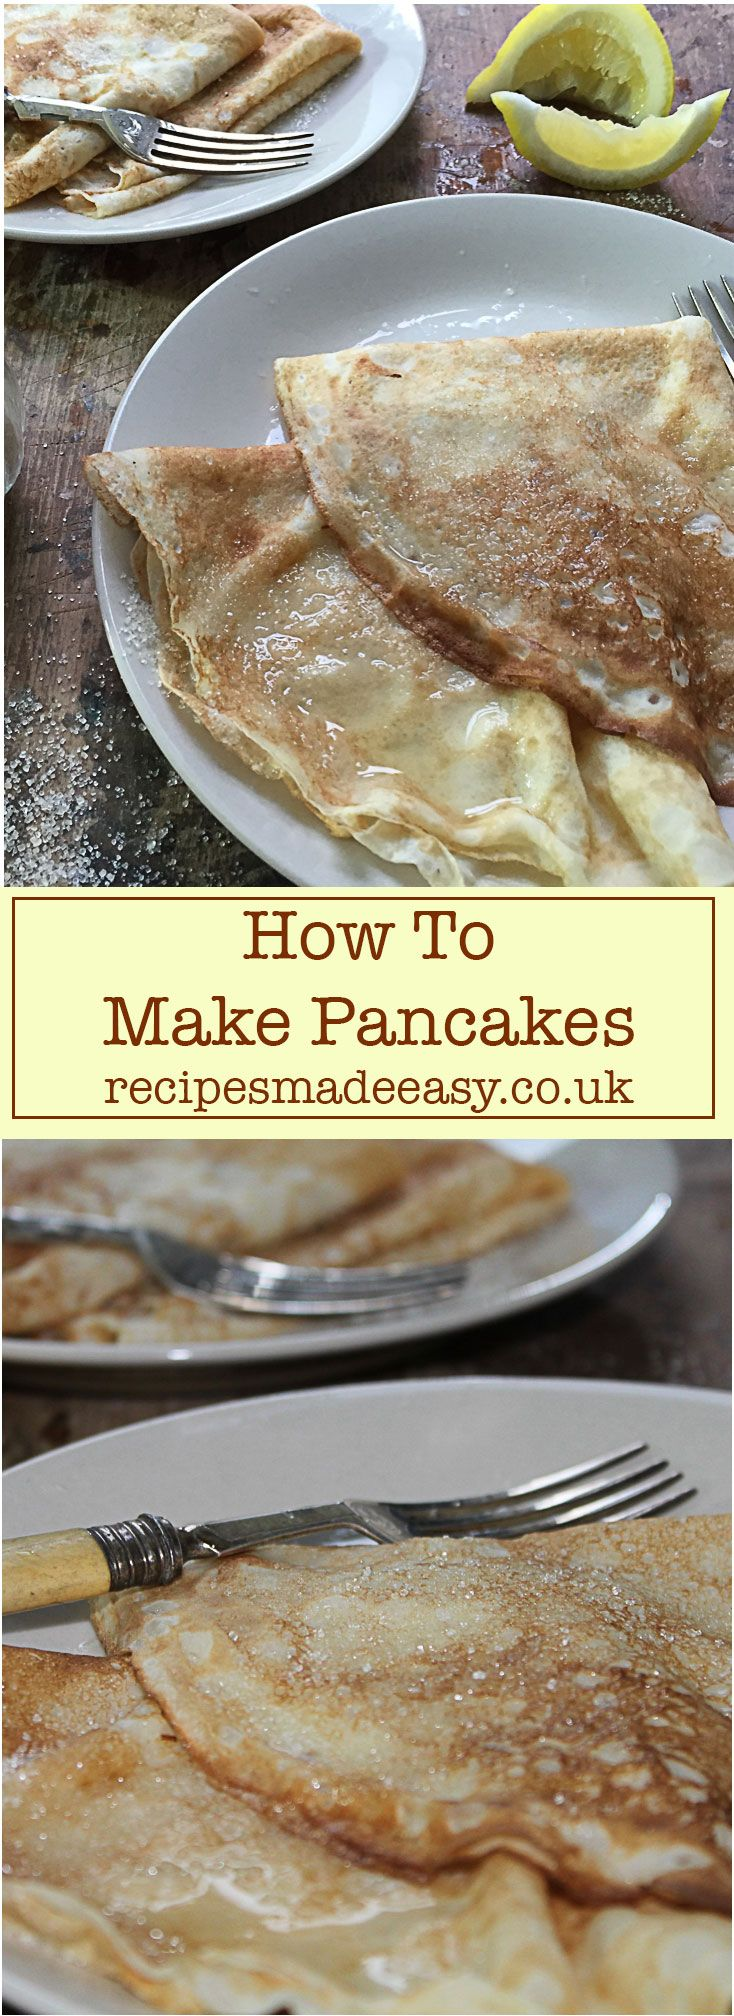 Traditionally eaten on shrove Tuesday - Pancake Day! Enjoy these English style pancakes any time with Recipes Made Easy Step by Step via @jacdotbee